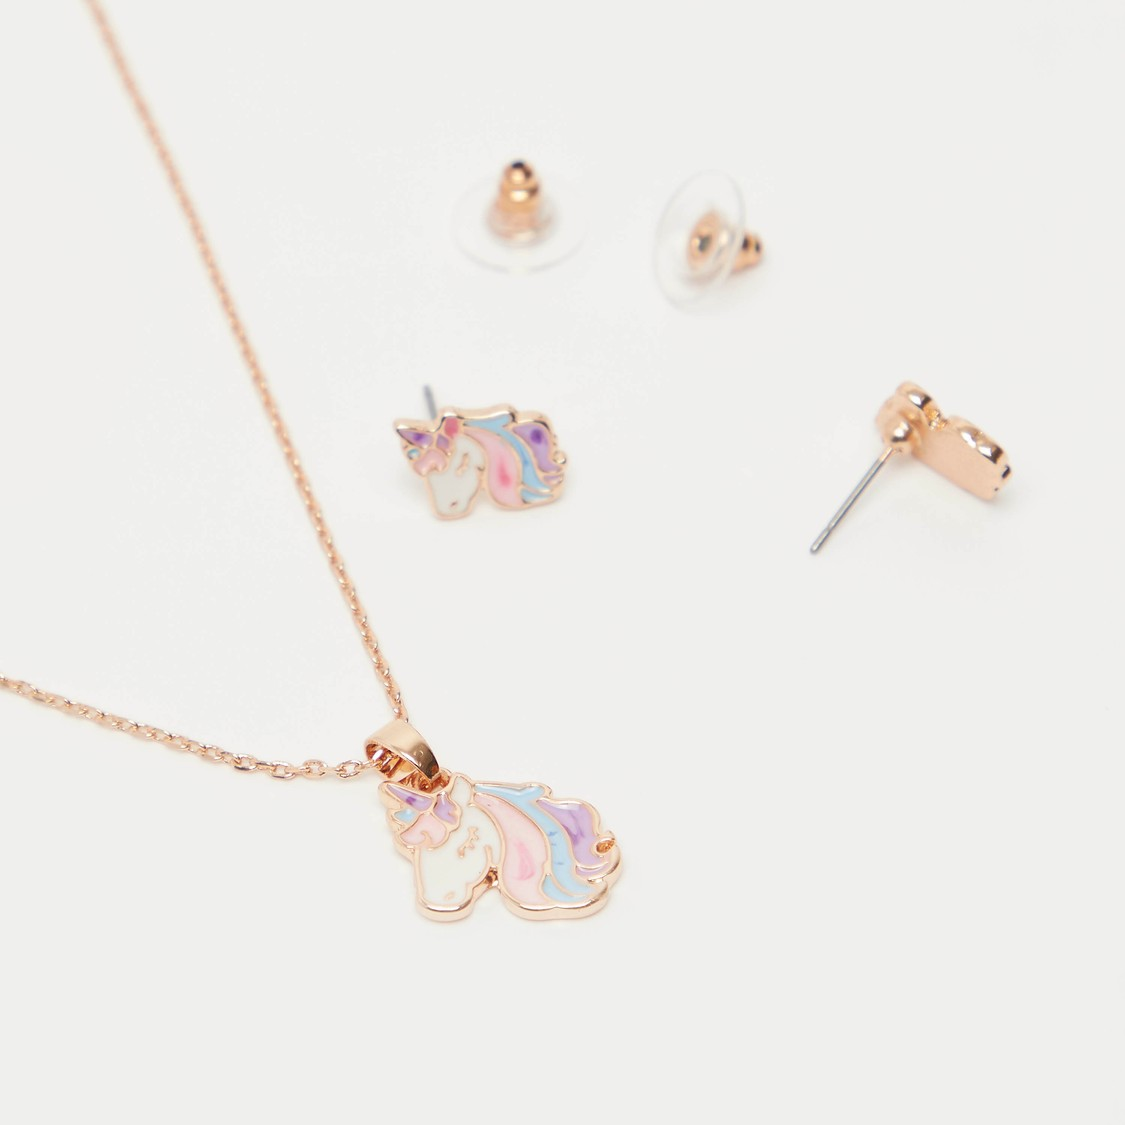 Unicorn Stud Earrings and Necklace with Lobster Clasp Closure